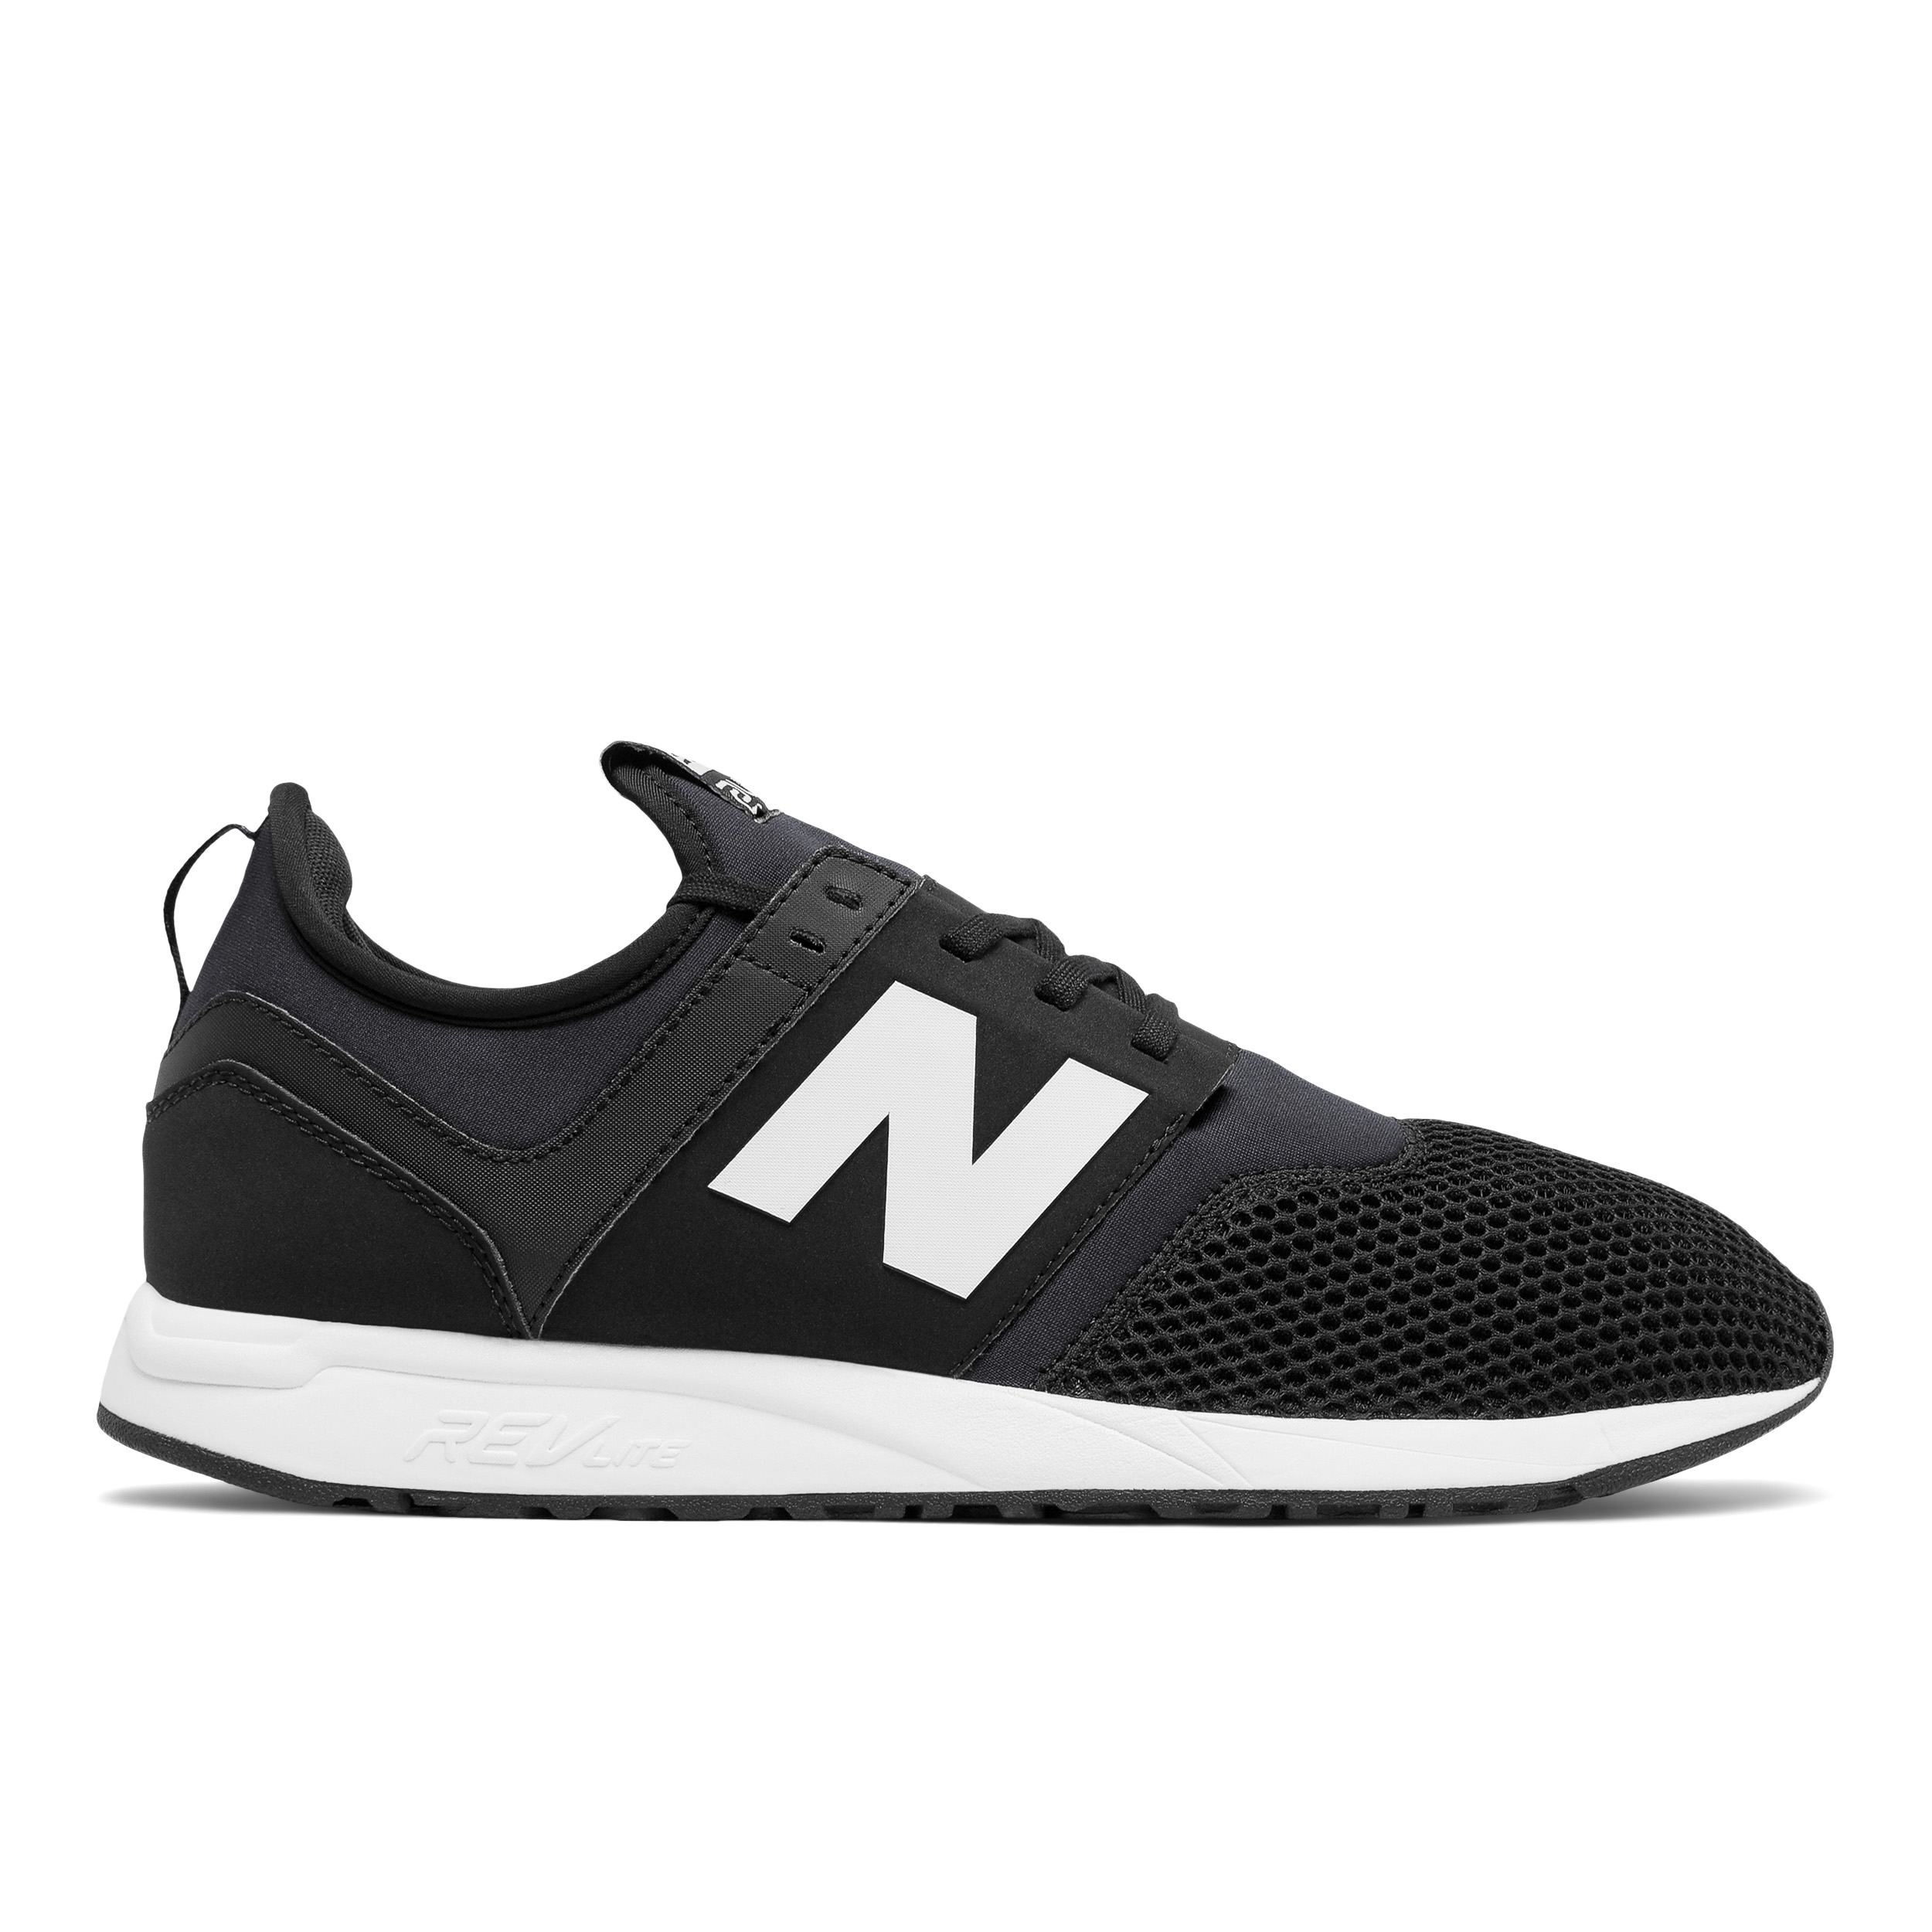 247 new balance on feet nz